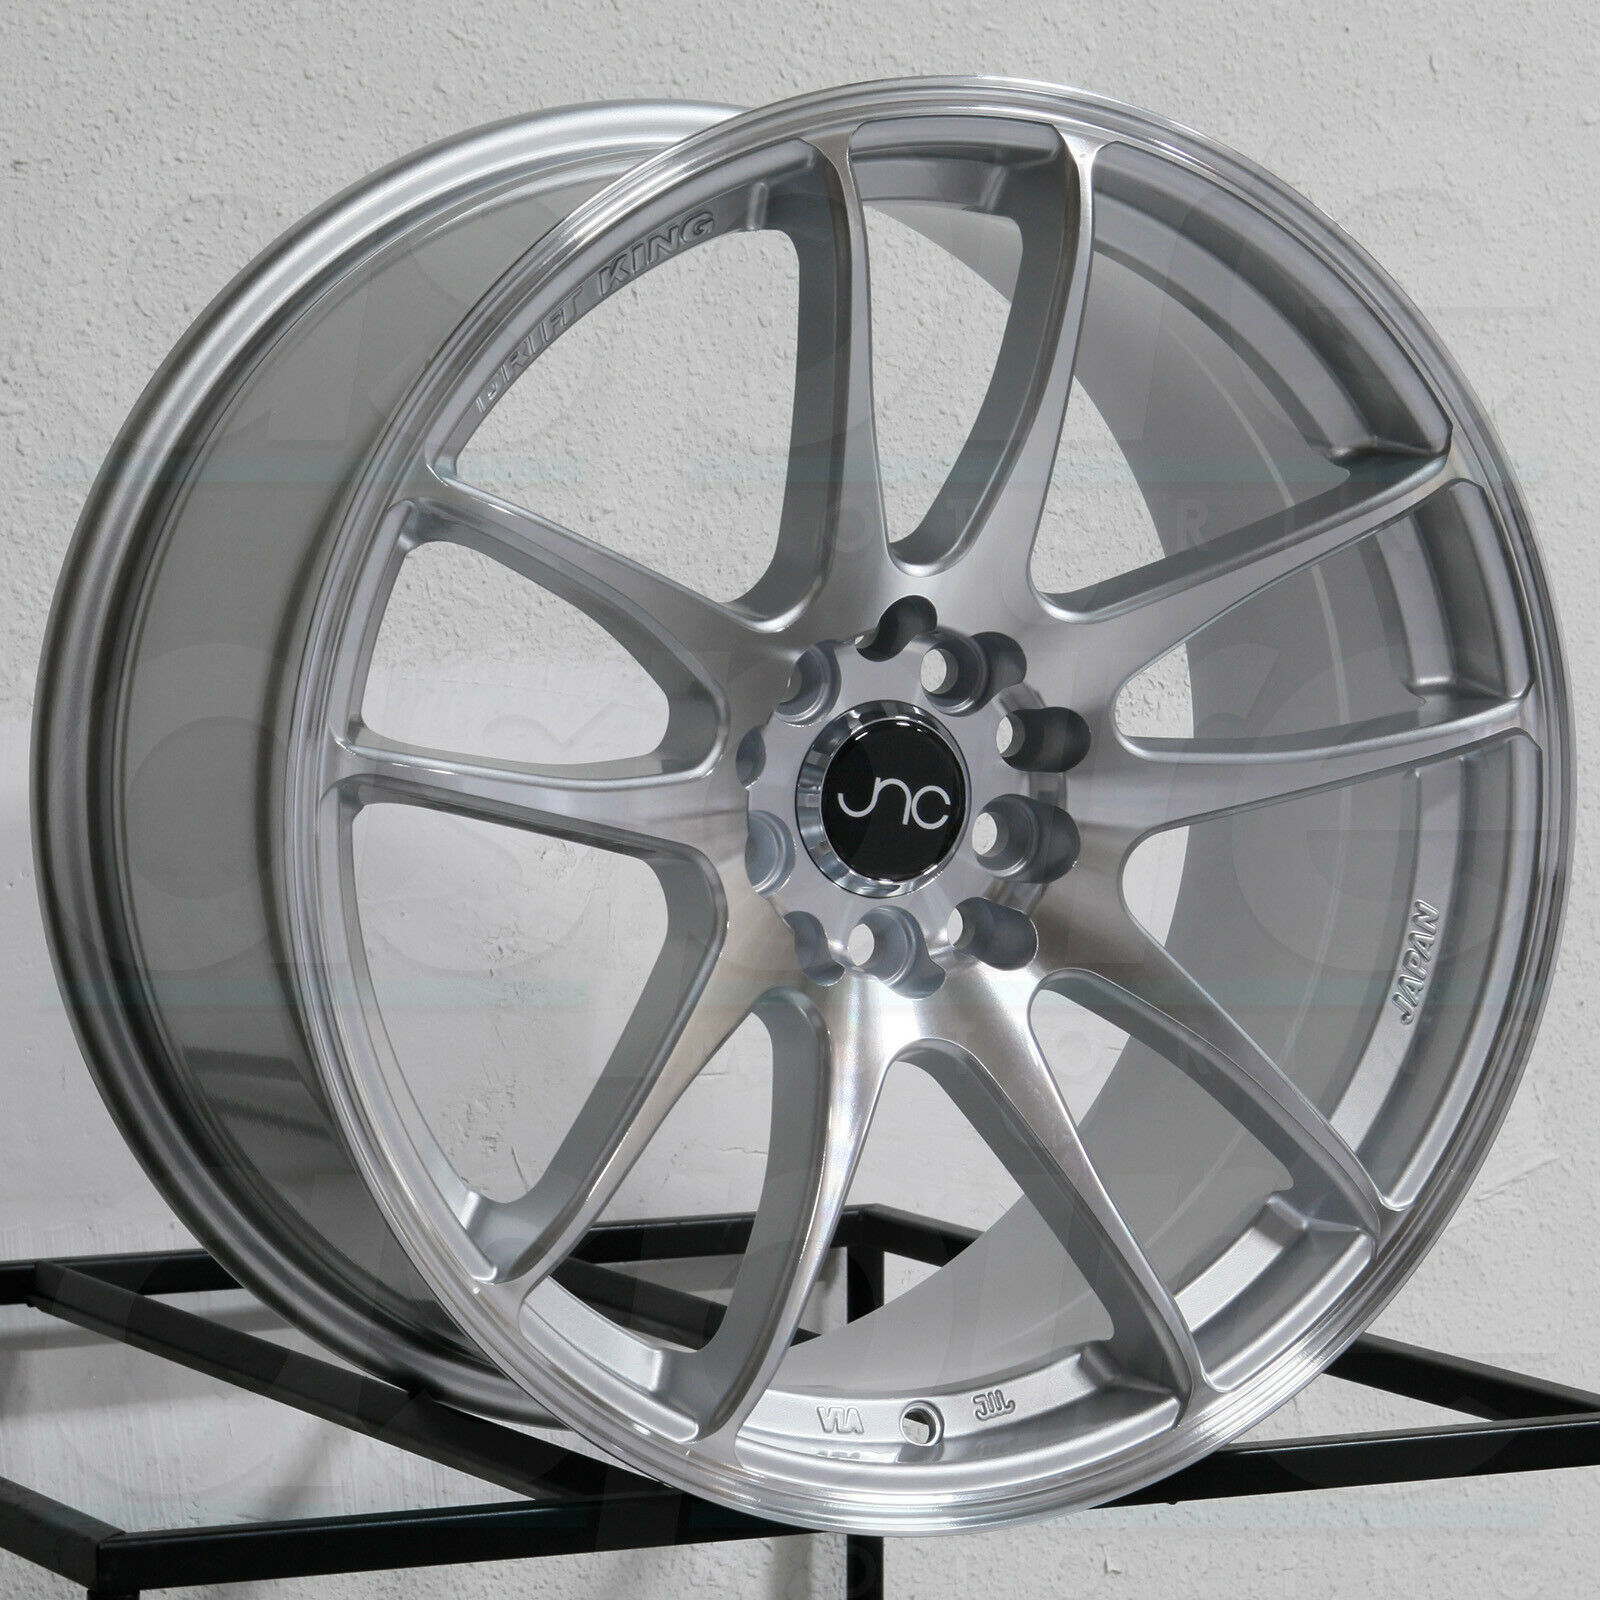 Primary image for 16x8.25 JNC 030 4x100/4x114.3 25 Hyper Silver Wheel New set(4)